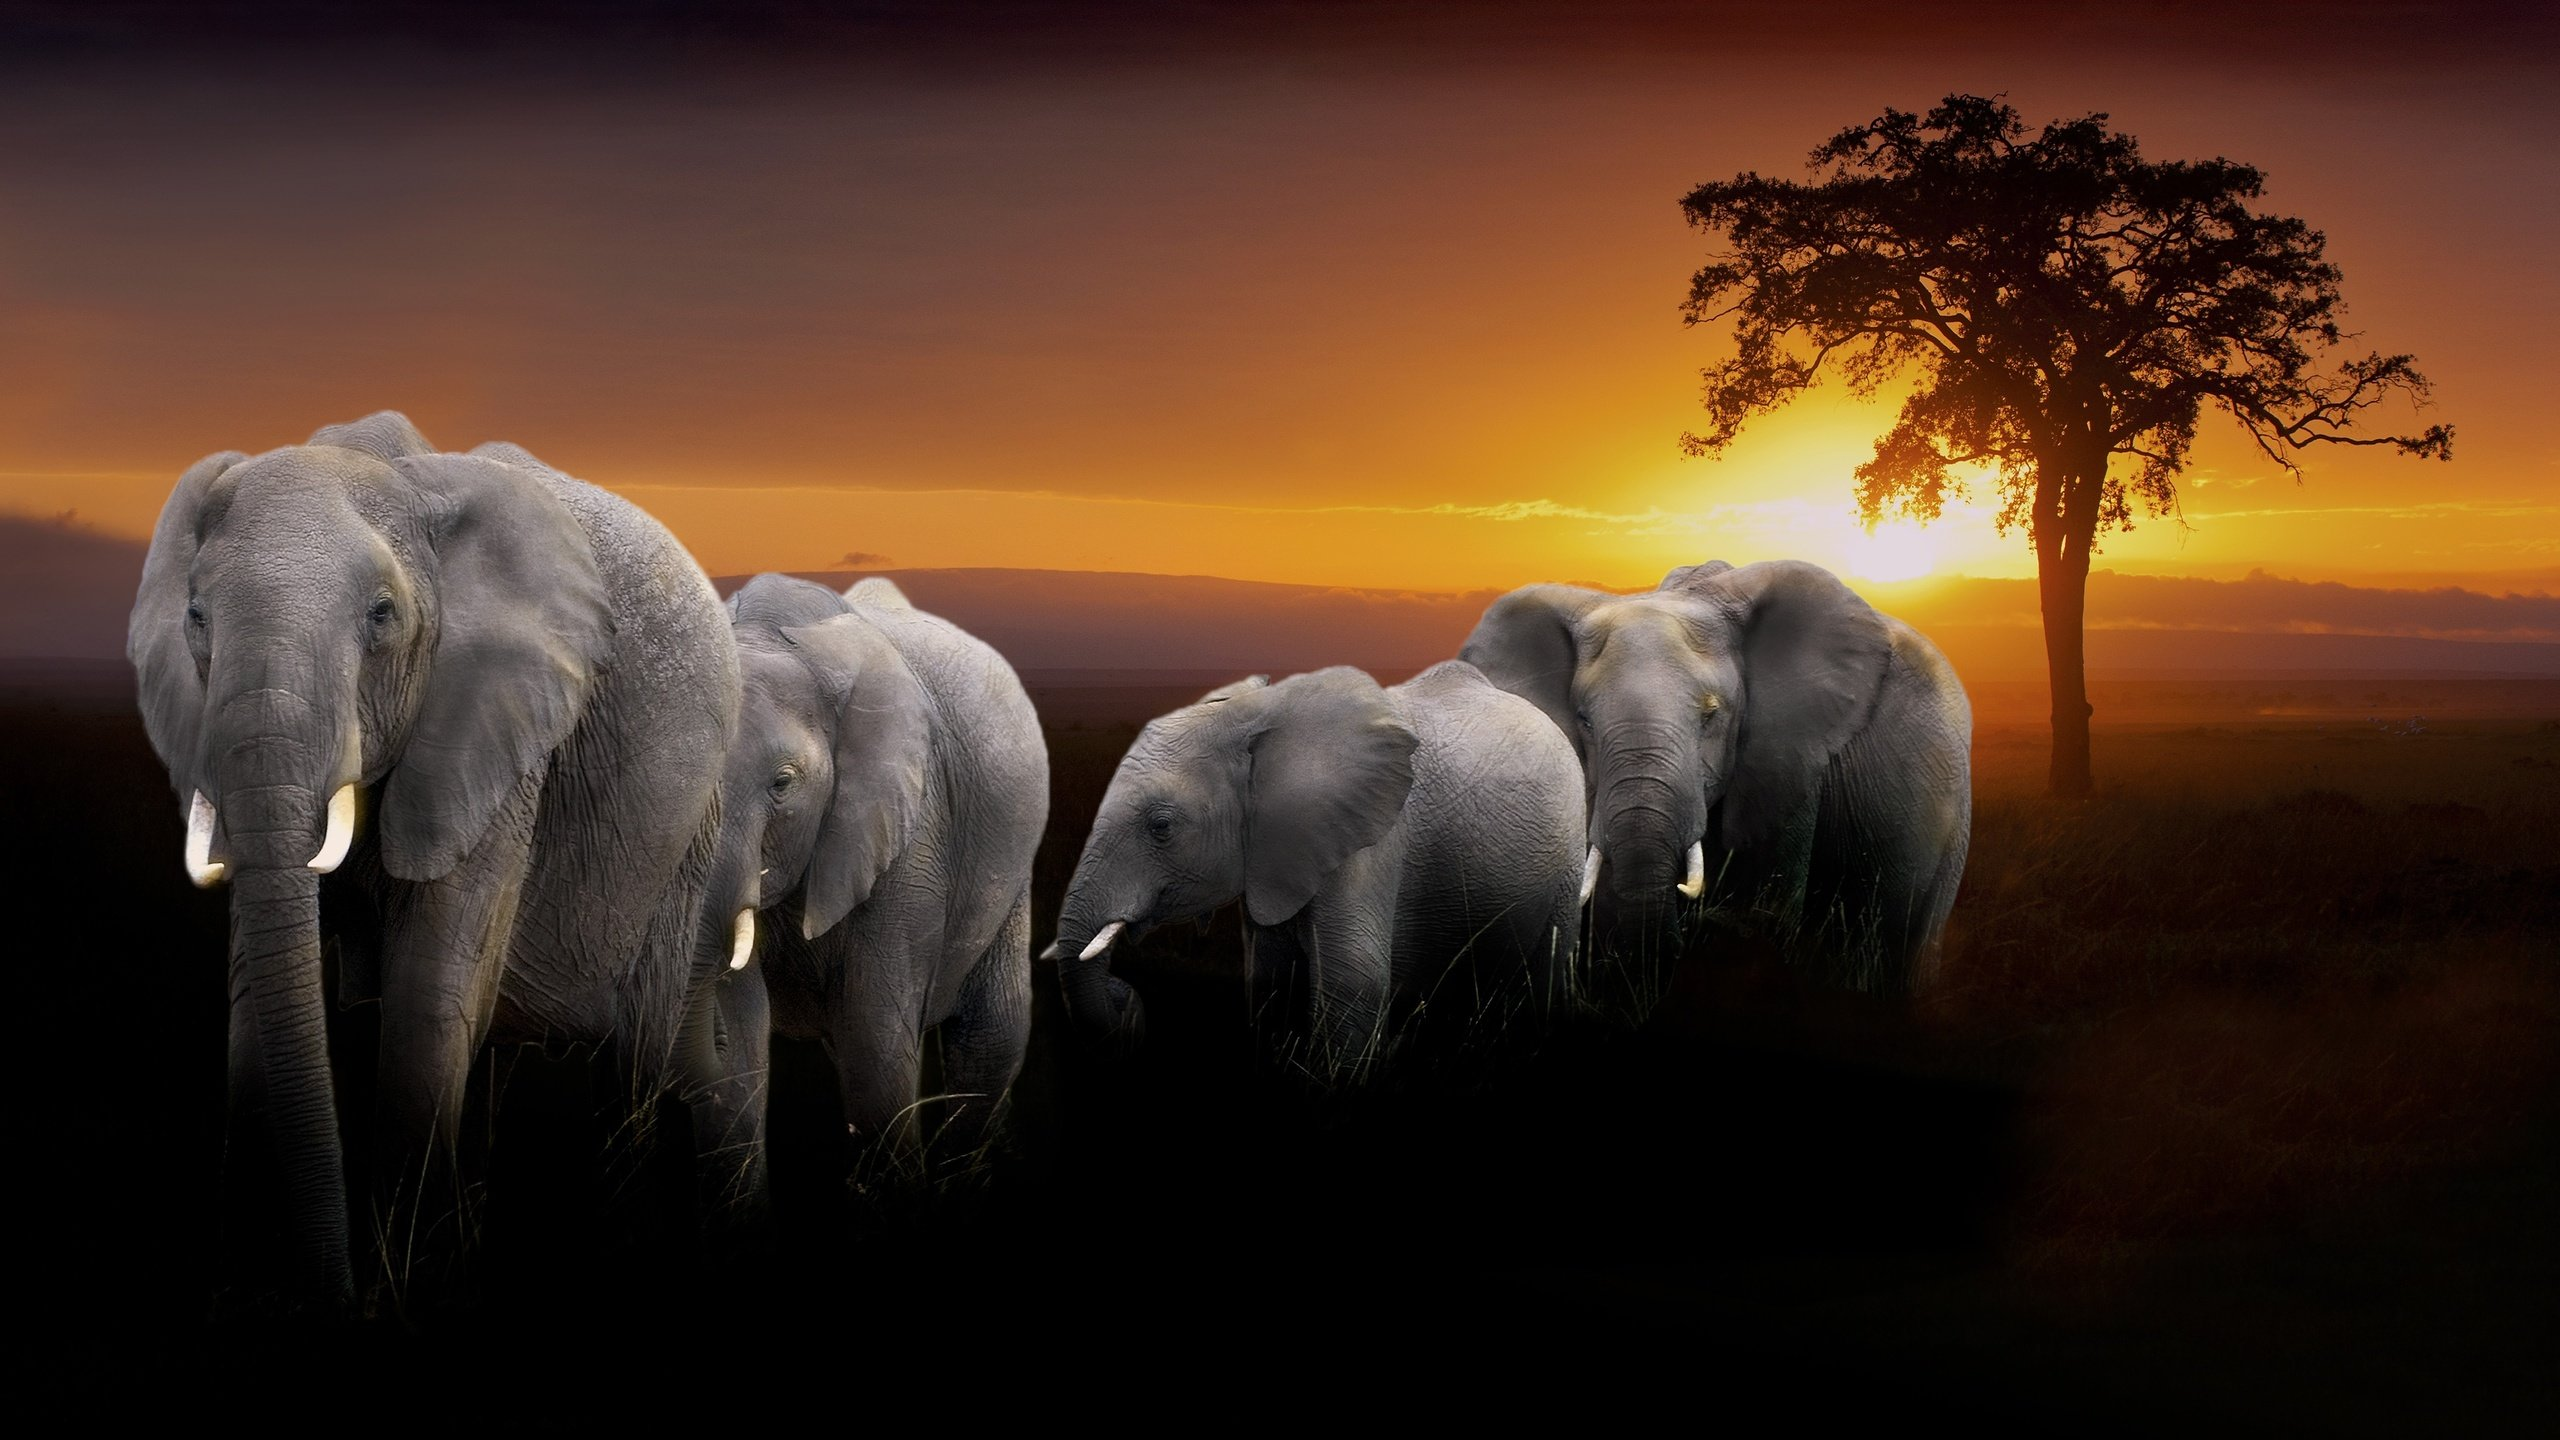 High resolution Elephant hd 2560x1440 background ID:132856 for PC